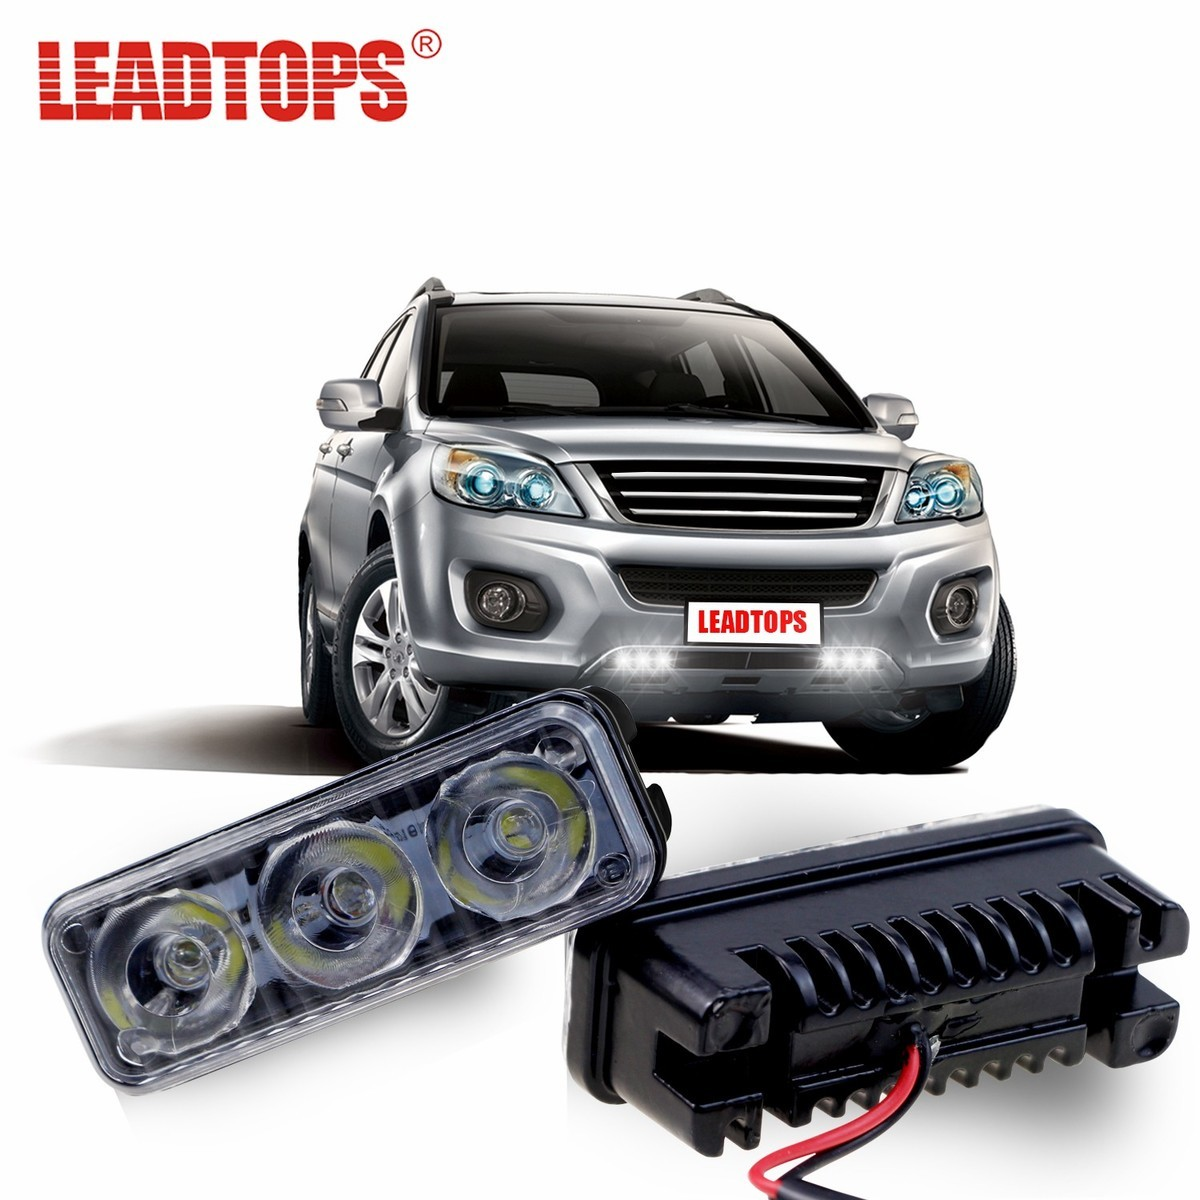 LEADTOPS Waterproof Car High Power Aluminum LED Daytime Running Lights With Lens DC12V Super White